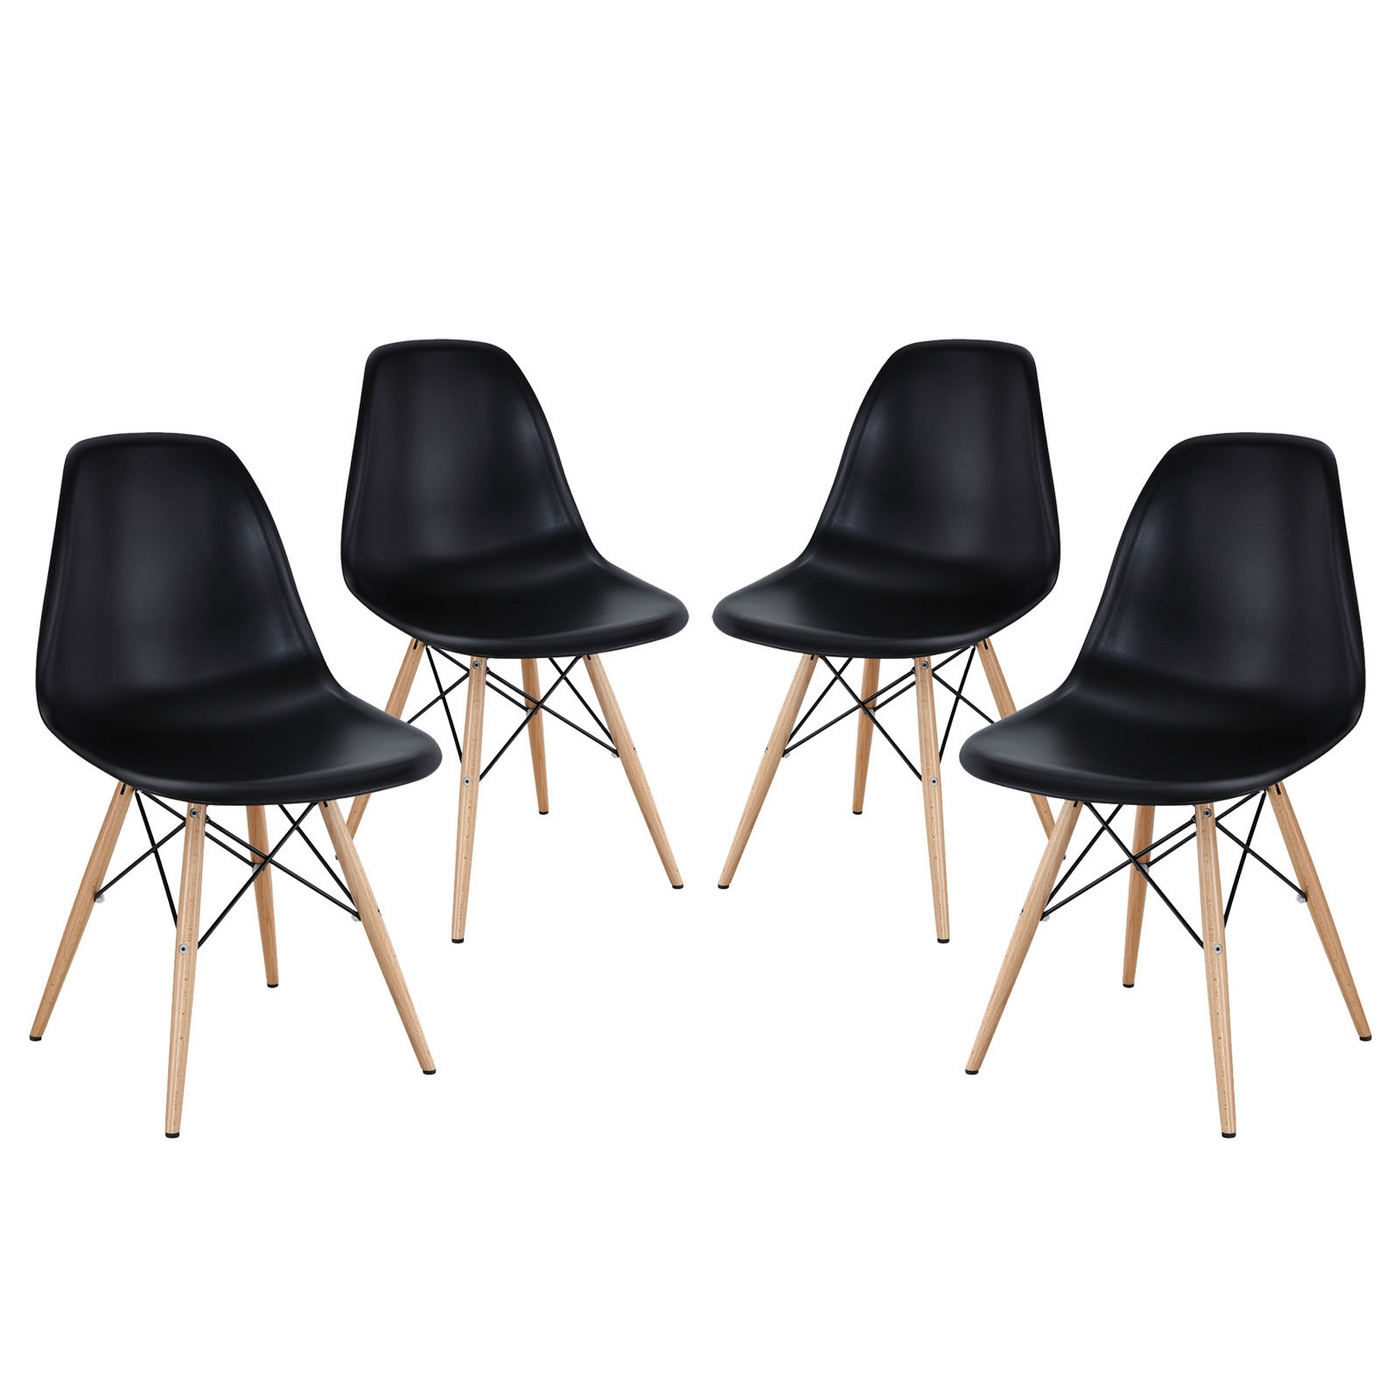 pyramid modern molded plastic dining side chairs with wooden legs black. Black Bedroom Furniture Sets. Home Design Ideas